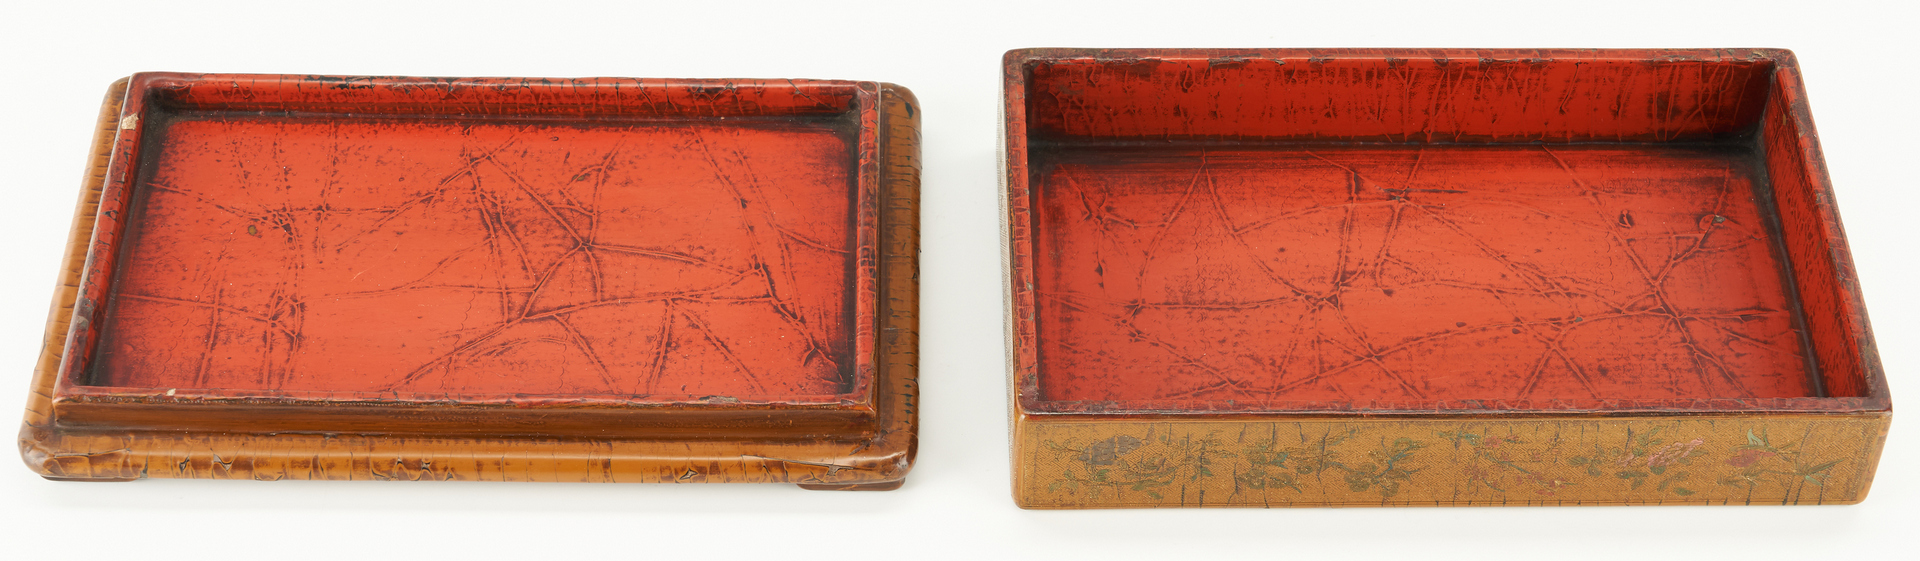 Lot 9: Chinese Ink Stone and Lacquer Box